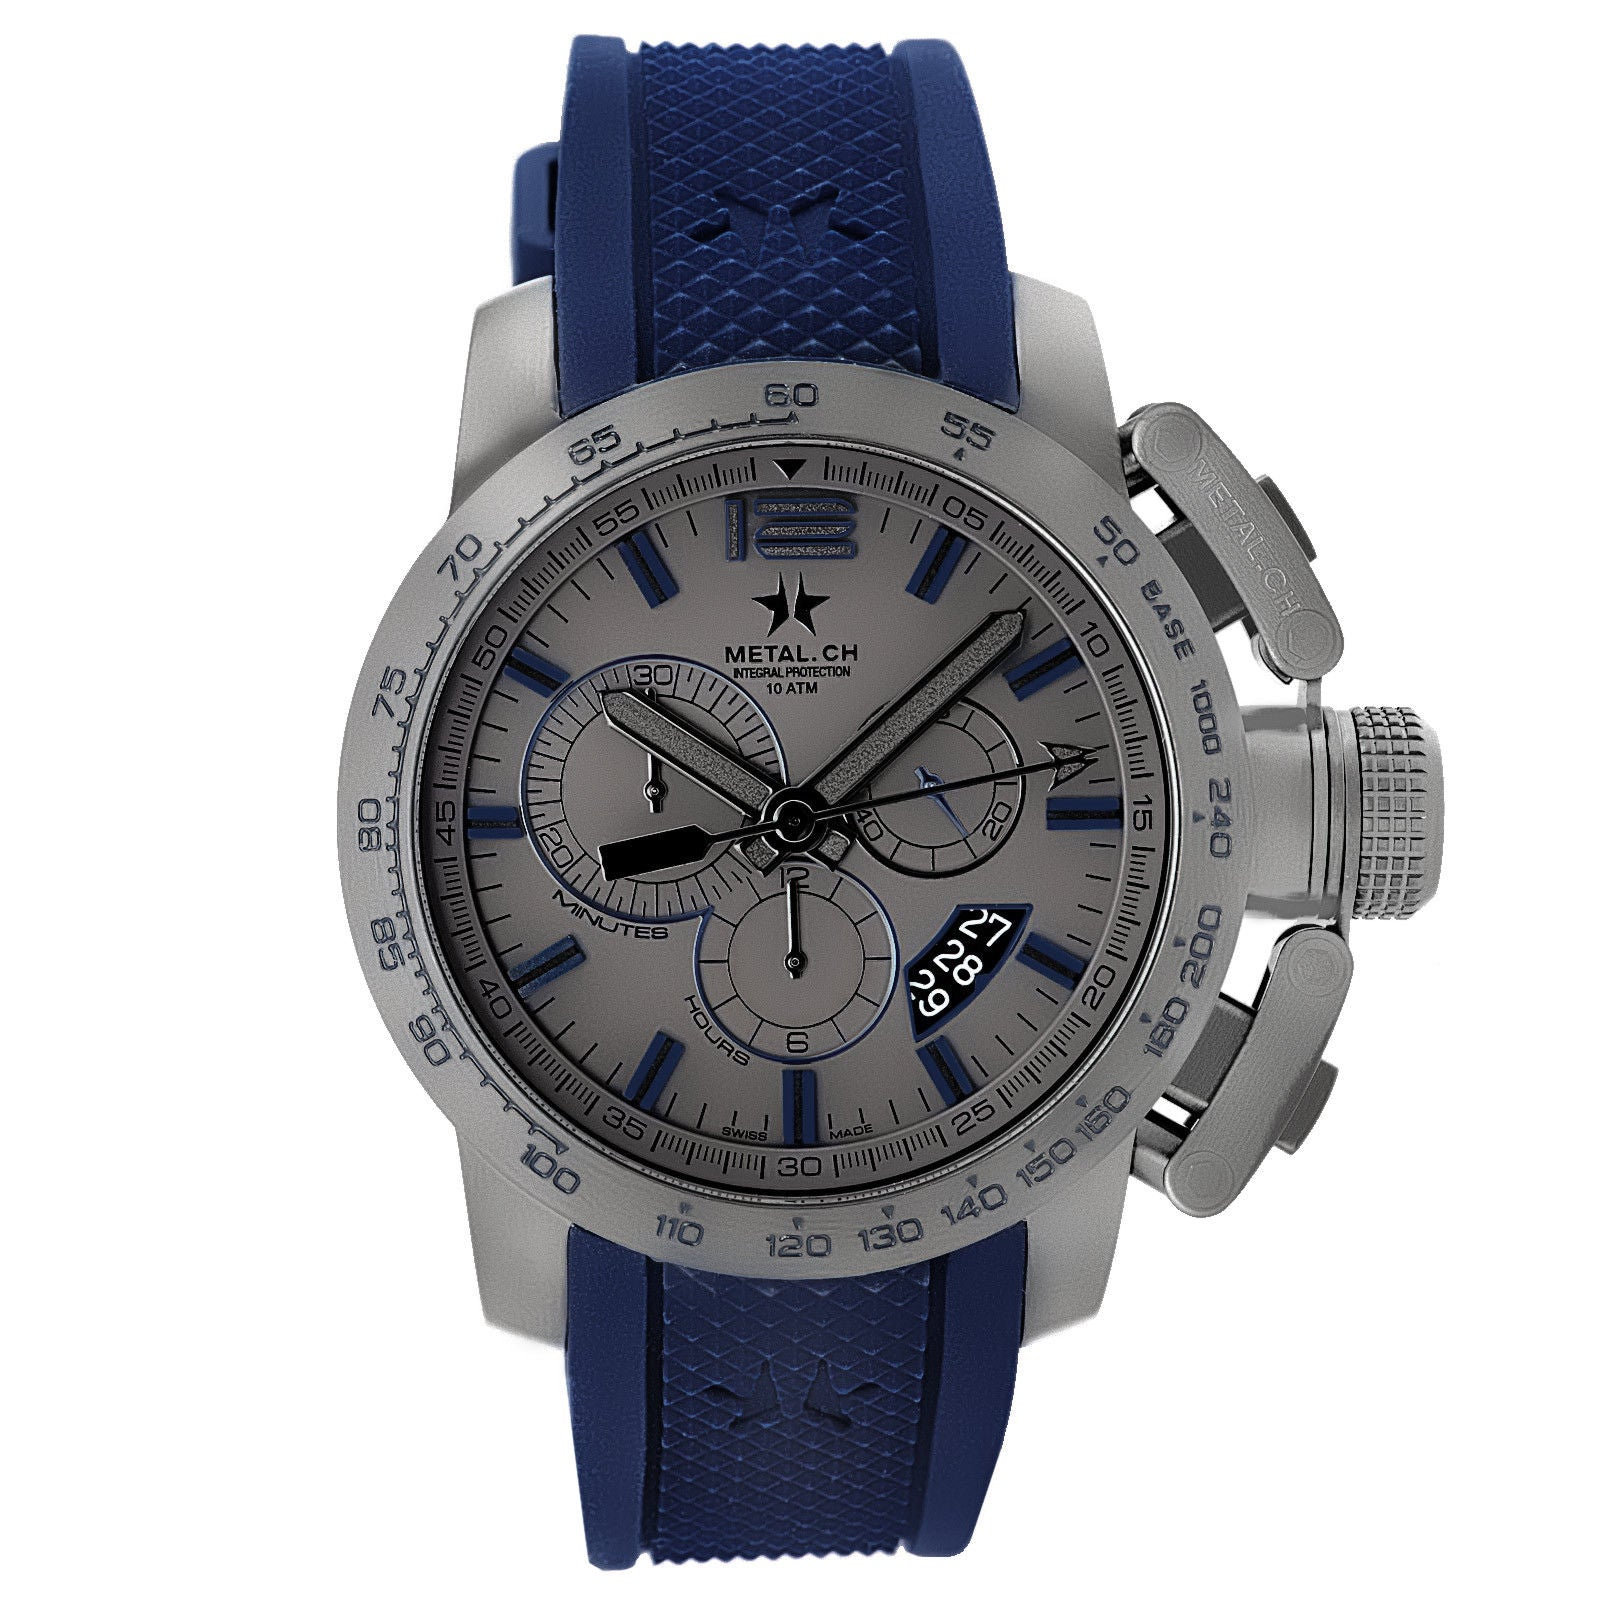 Chronosport Mens Chronograph Swiss Made Watch 4539.44-Luxury Watches | Mens And Ladies Luxury Watches | Upscale Time